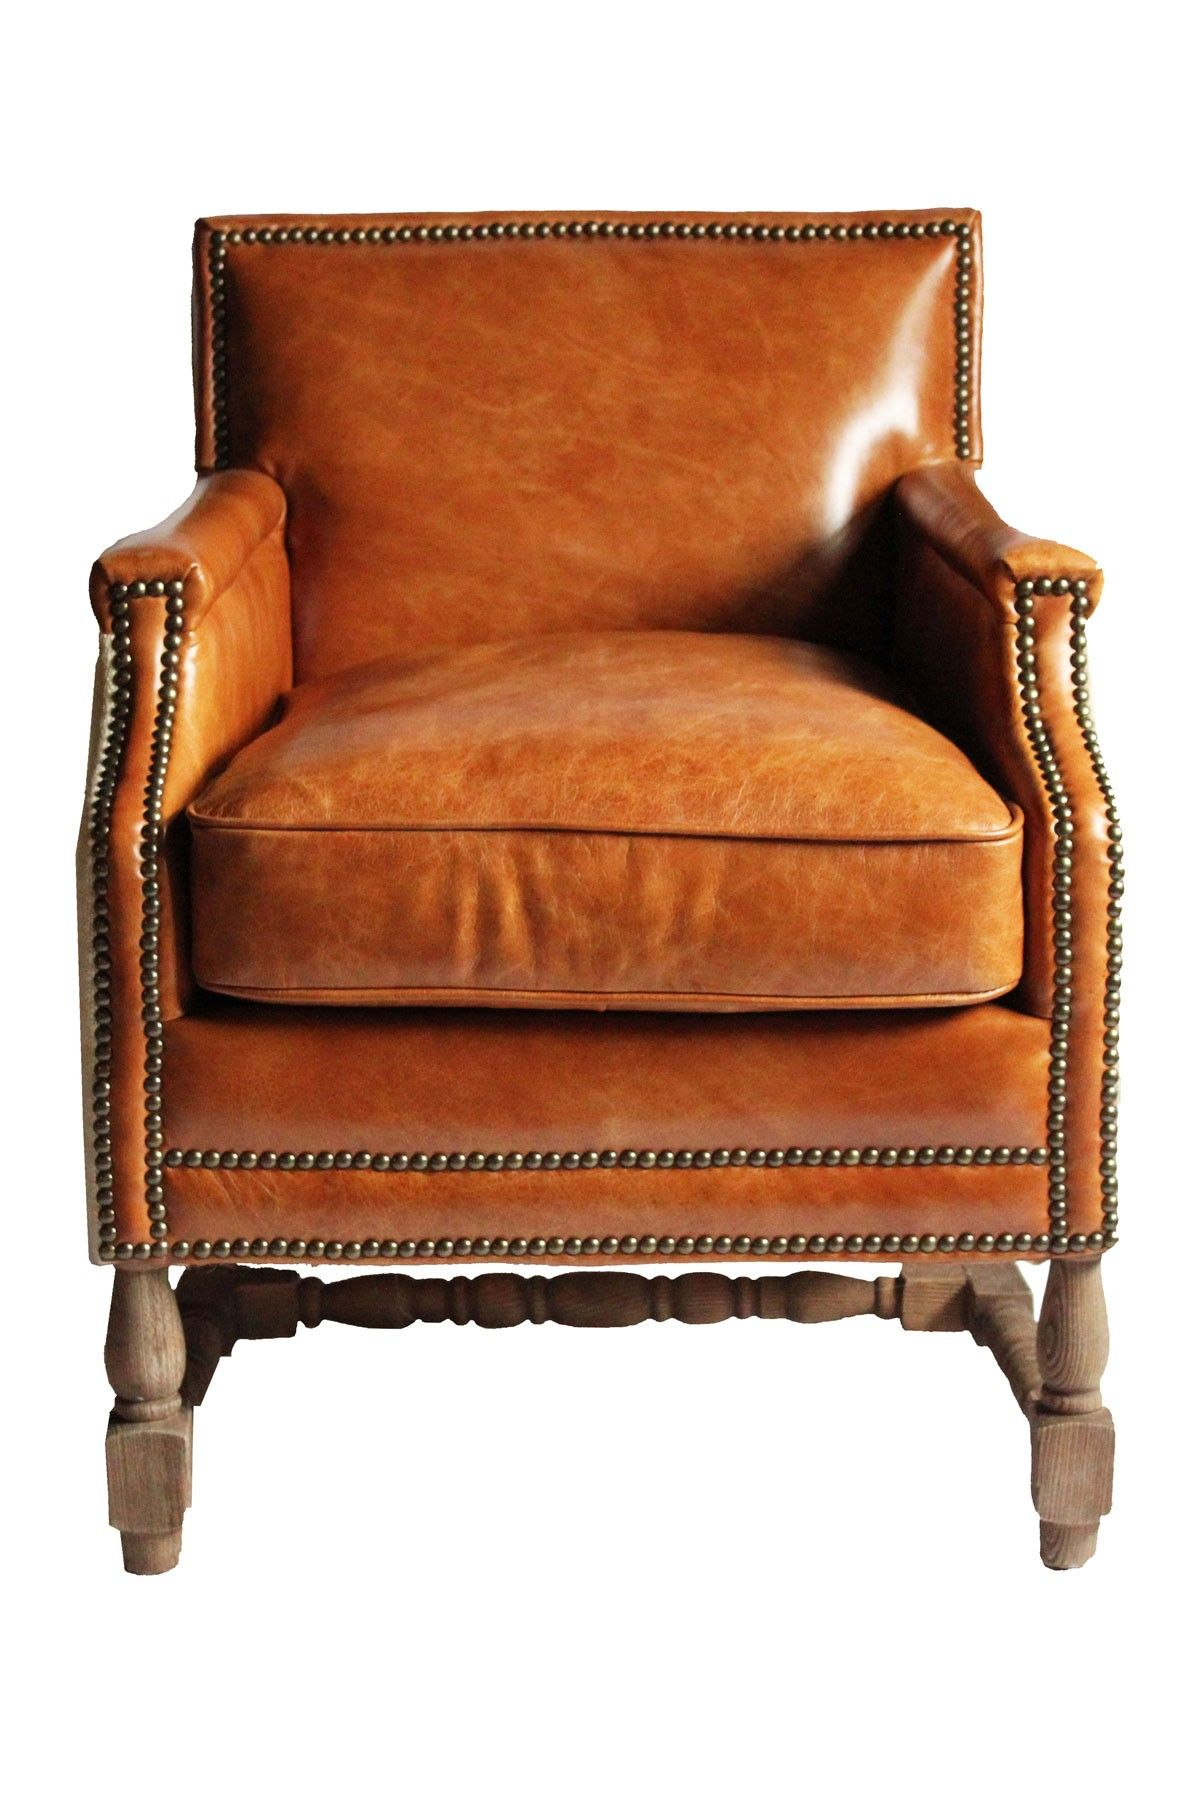 Beautiful Leather Arm Chair Armchair Furniture Home